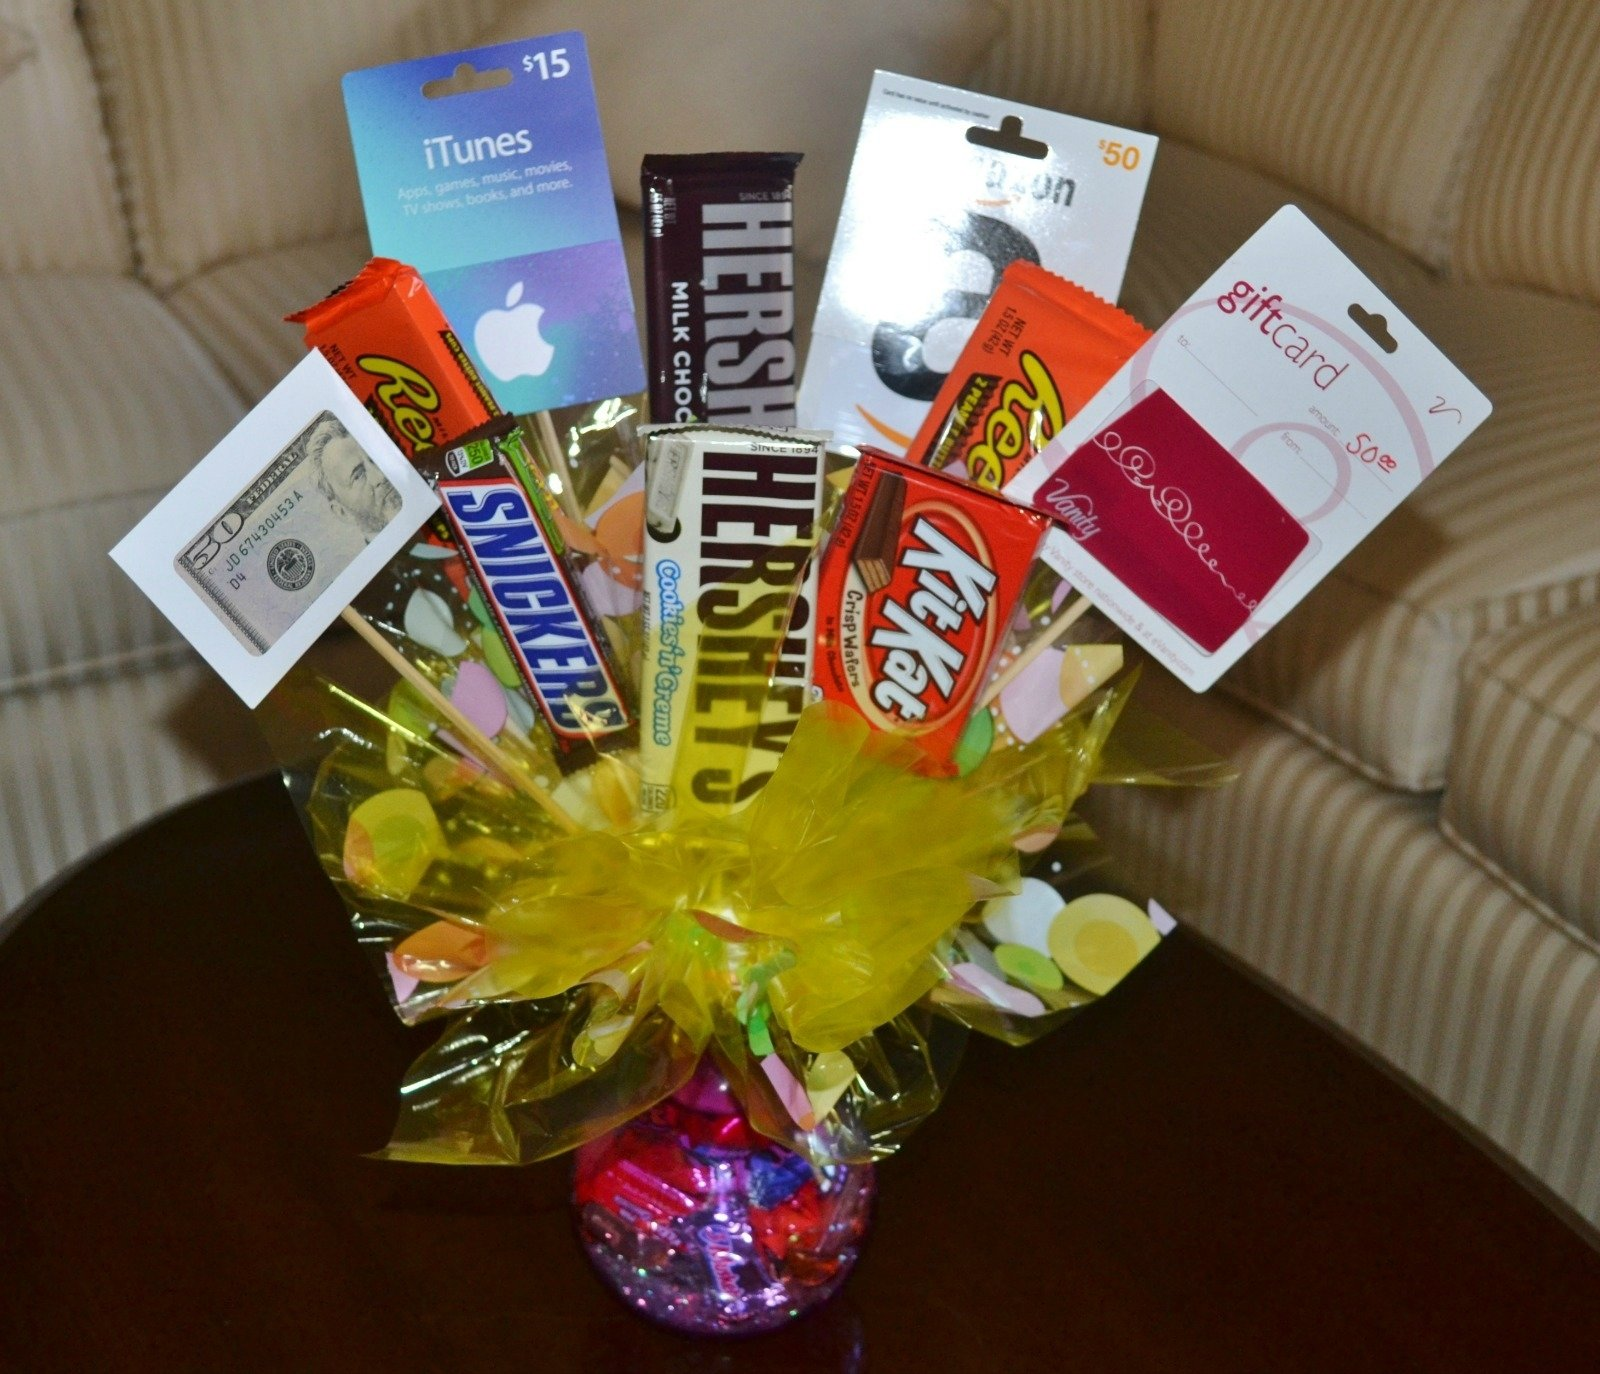 10 Best Gift Card Gift Basket Ideas gift ideas to buy the grandparents grandma honeys house 2 2020